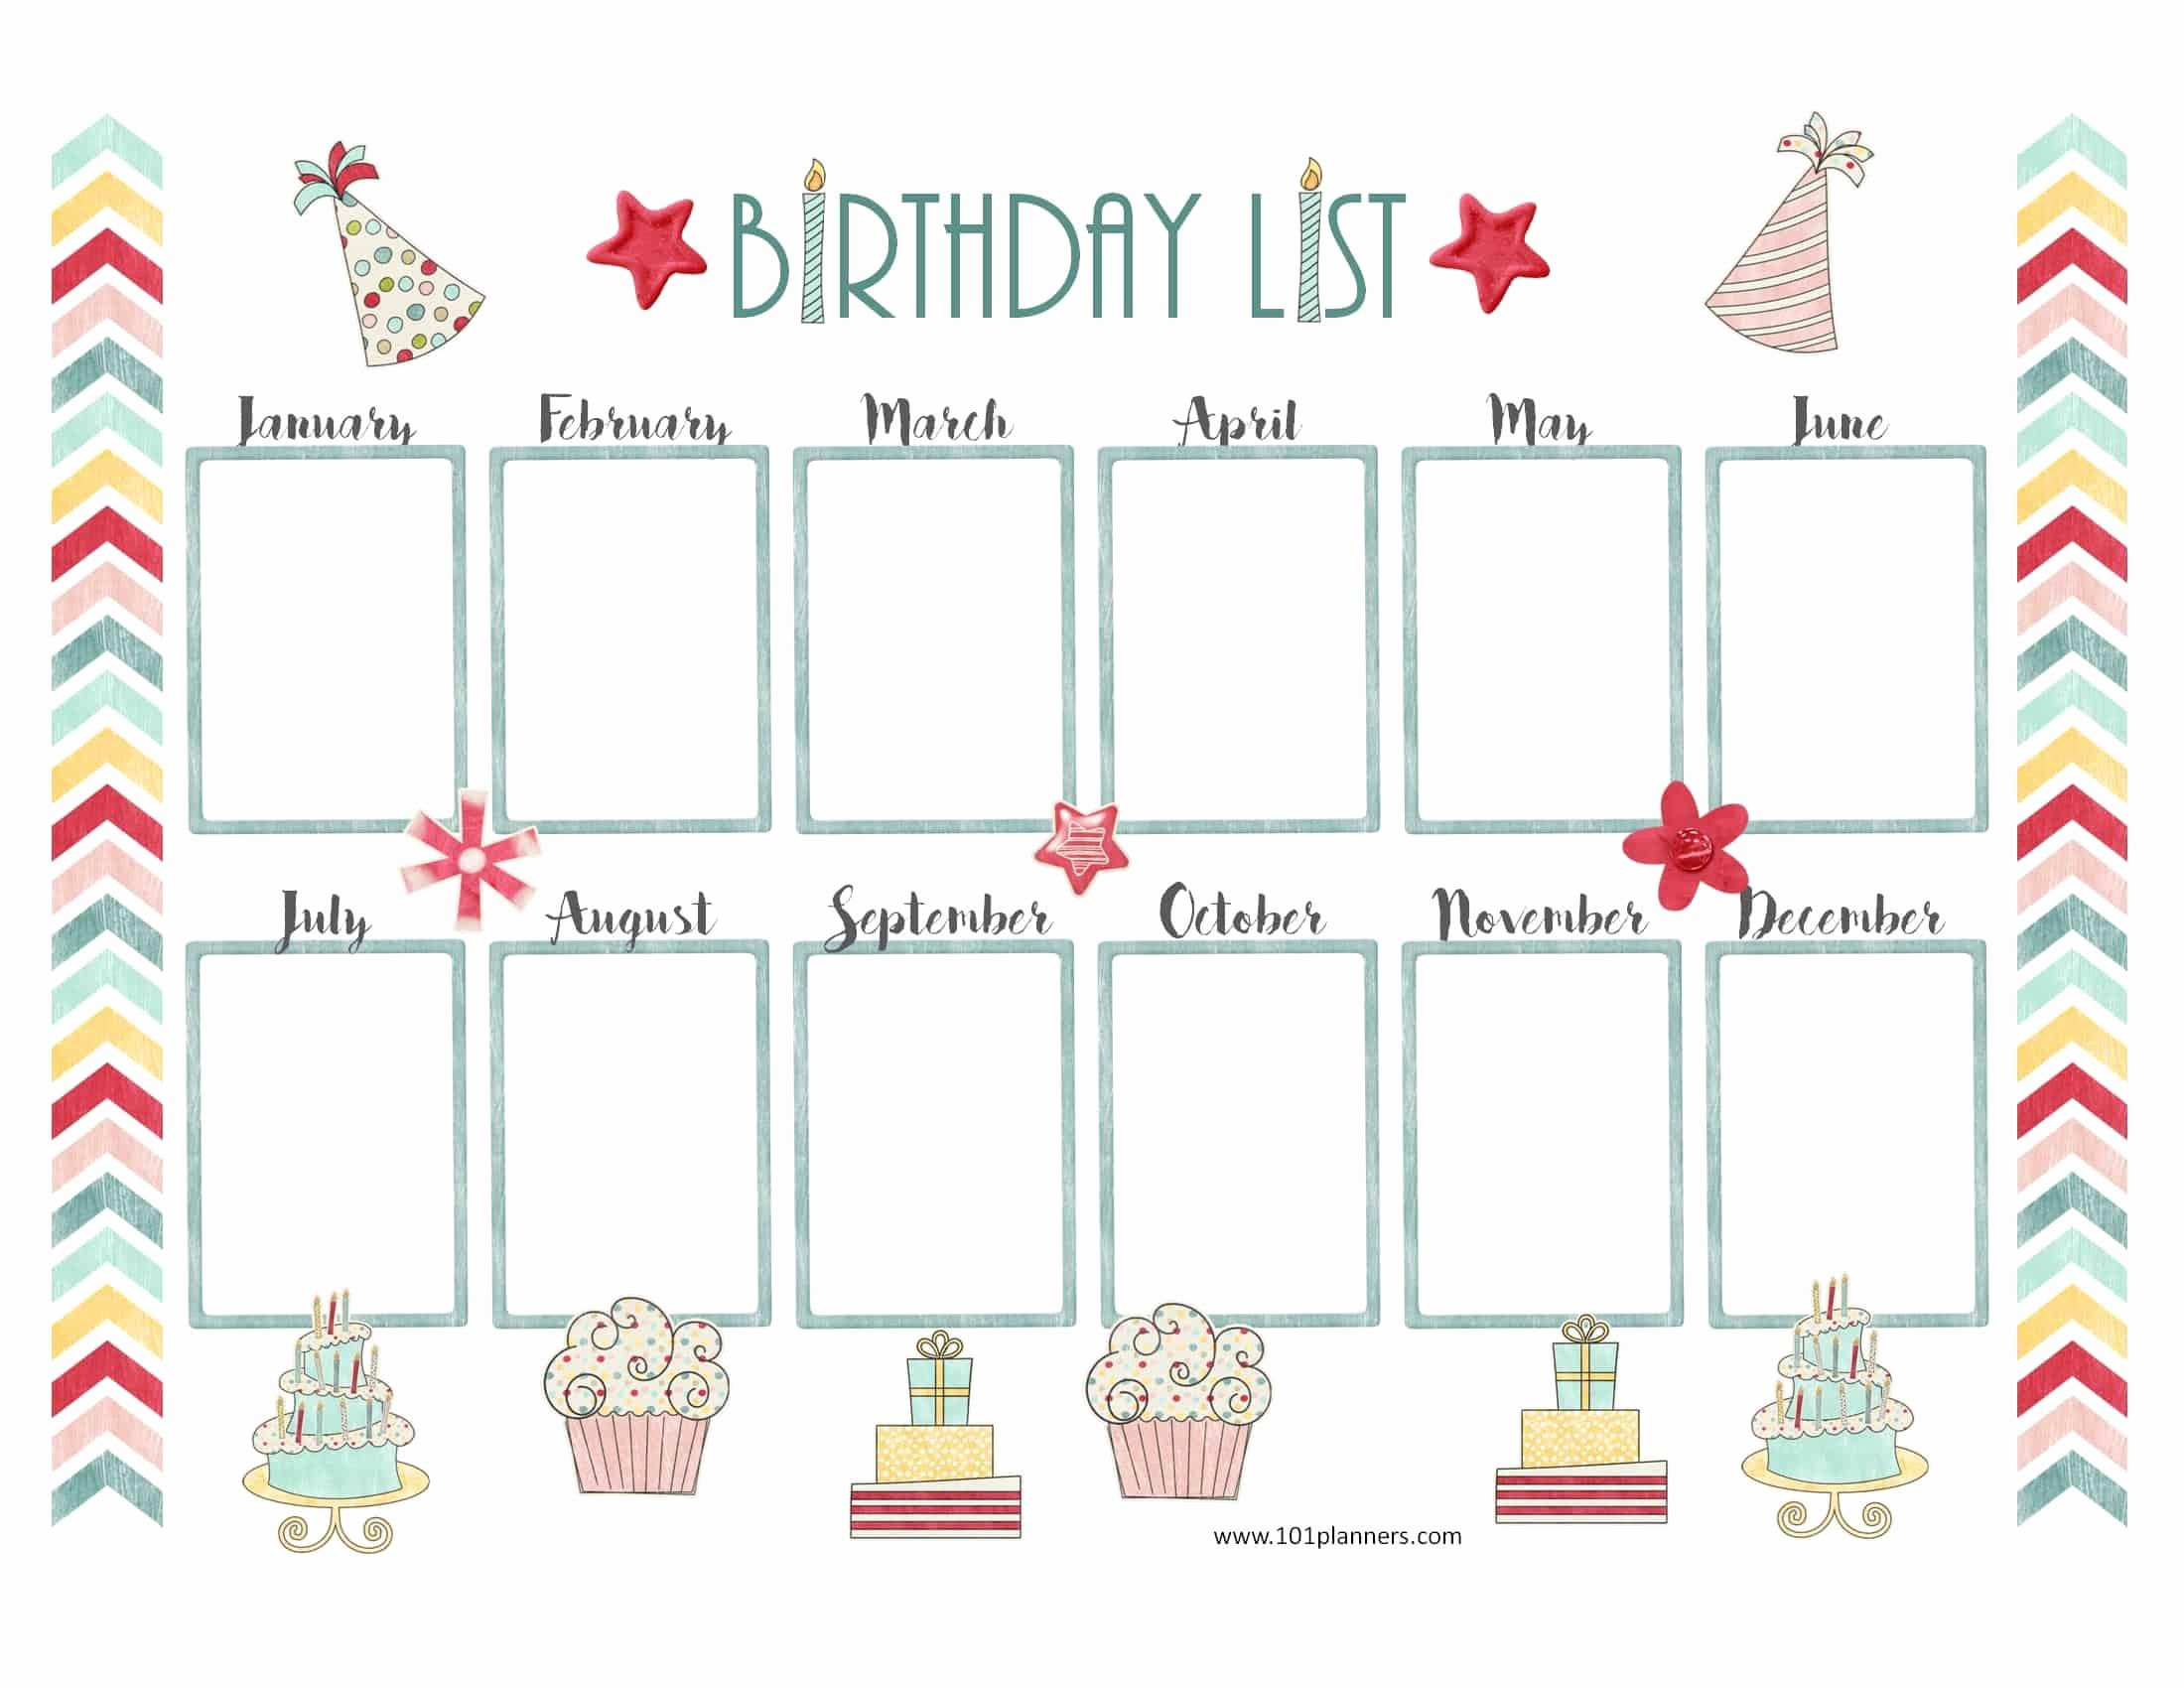 Employee Birthday List Template Luxury Free Birthday Calendar